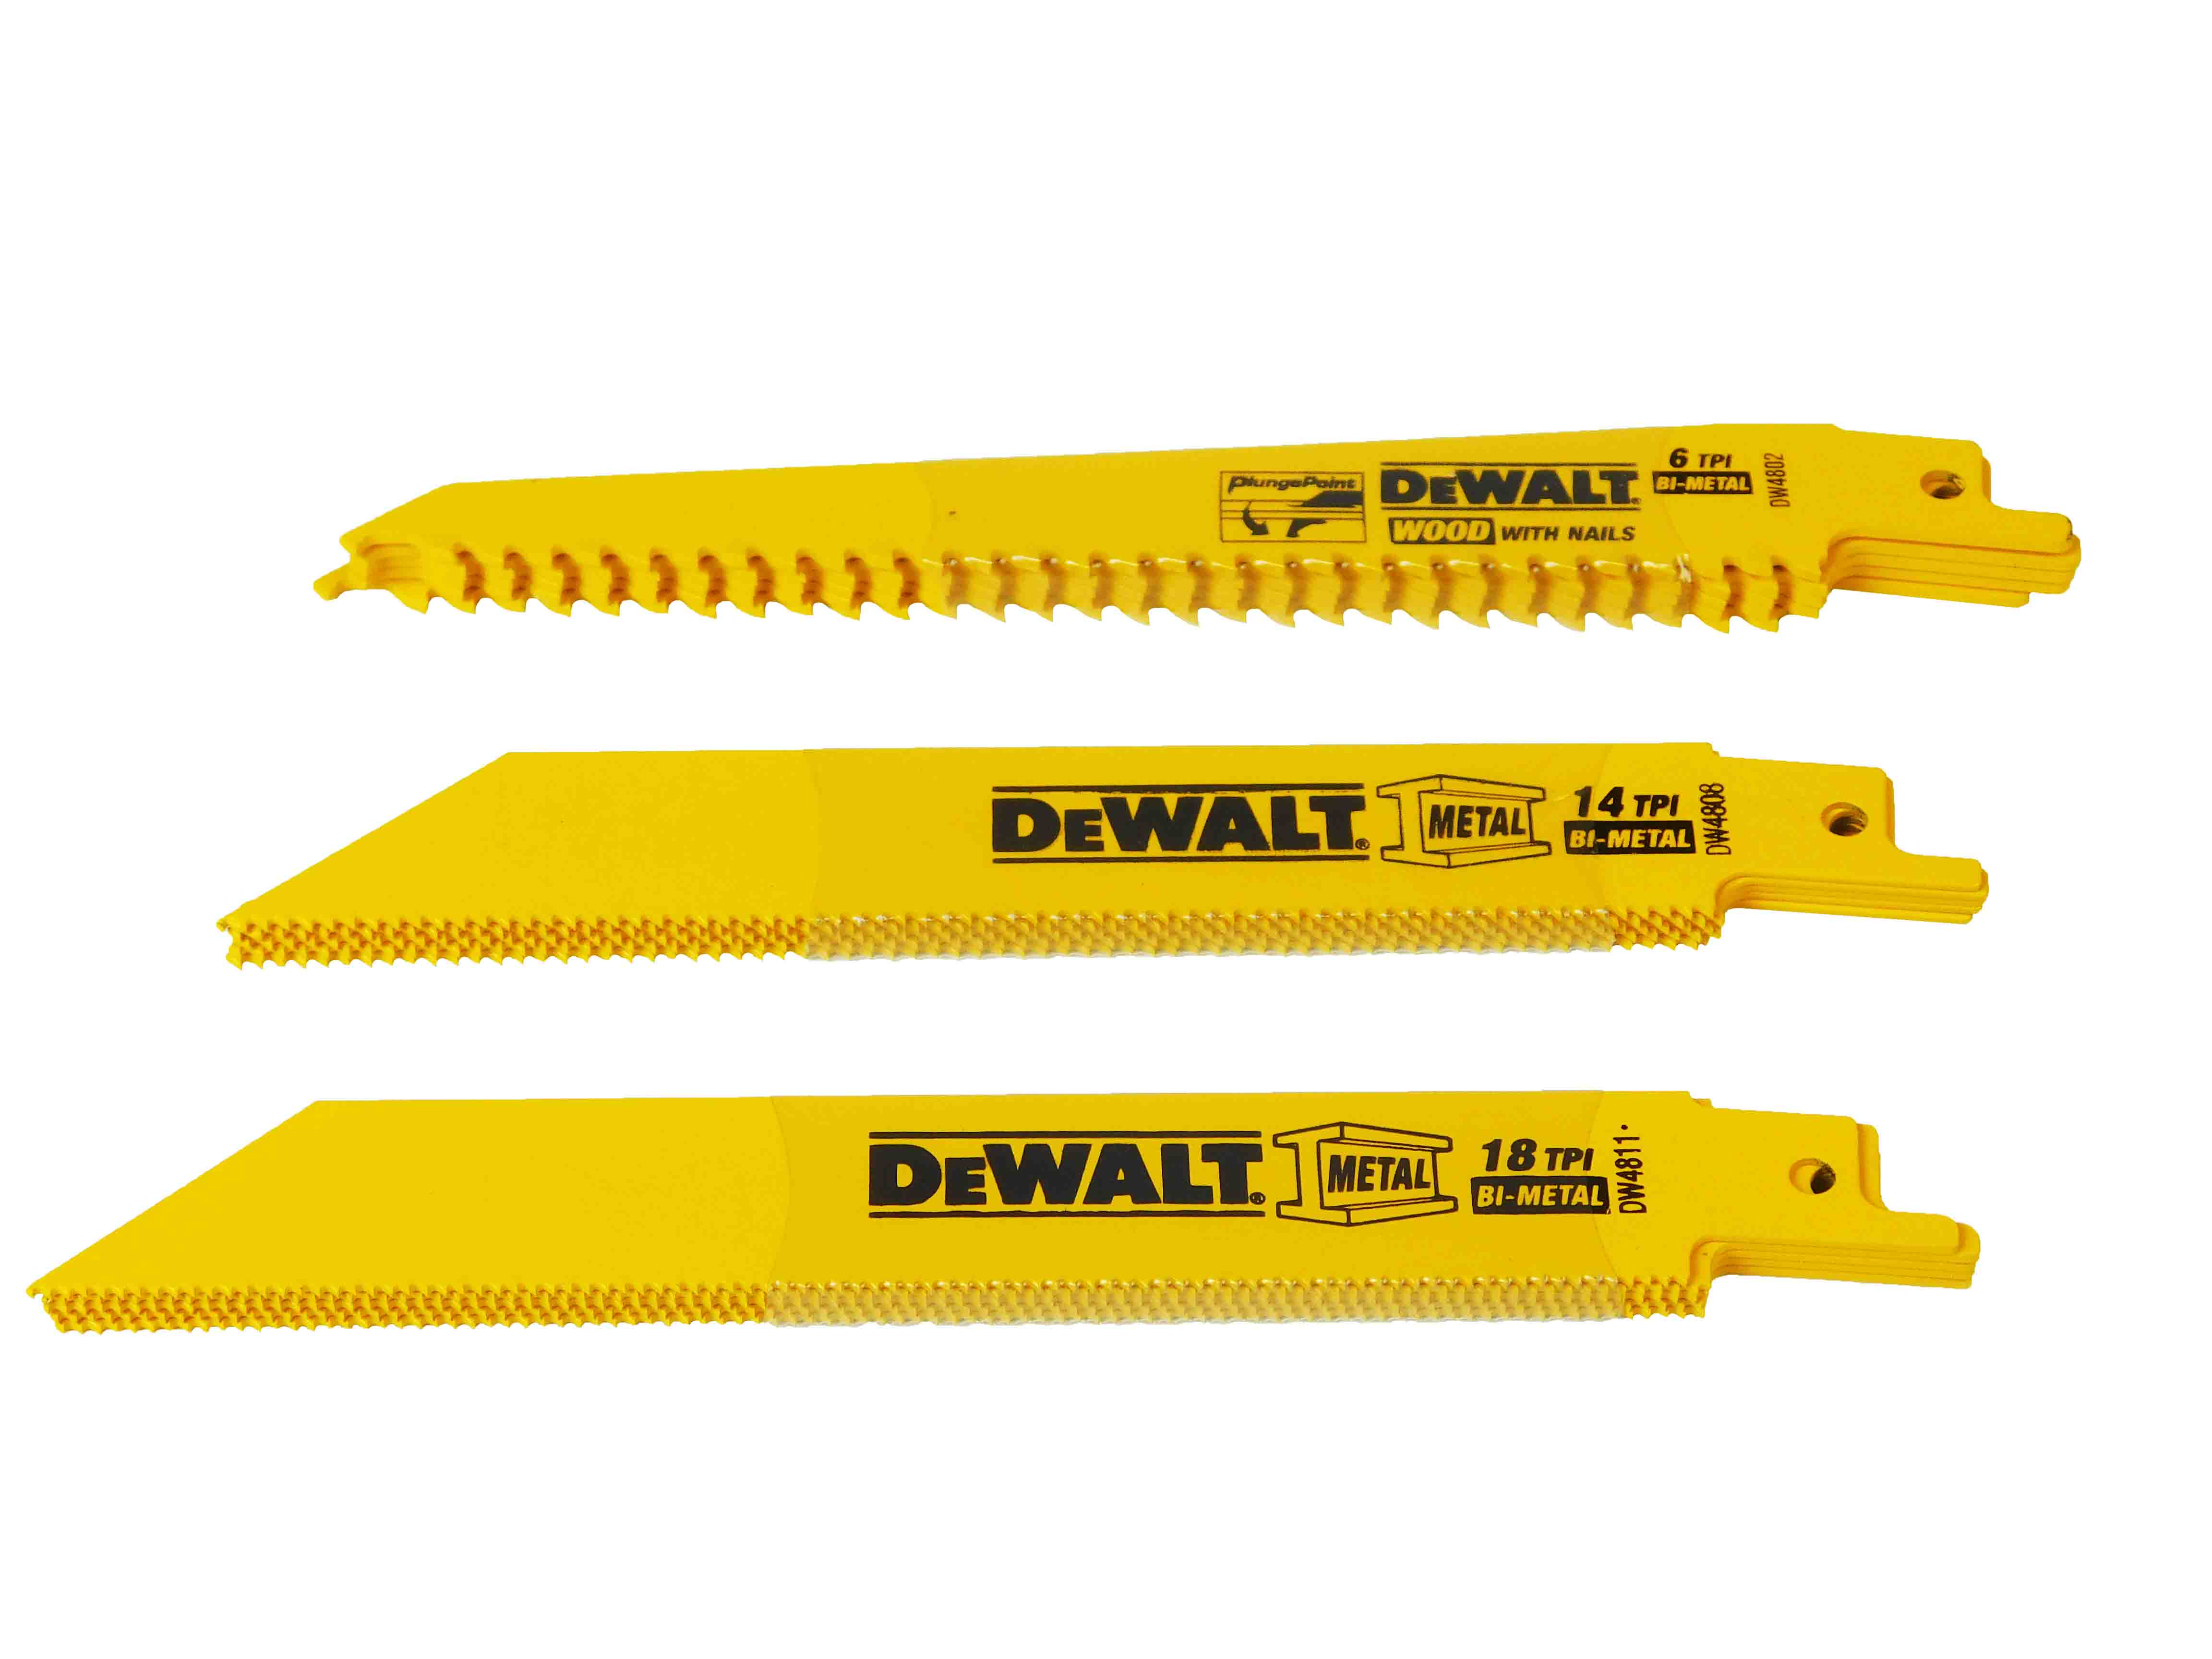 Dewalt-DCS381B-20VReciprocating-Saw-DW4890-15Pc-Reciprocating-Blades-image-5